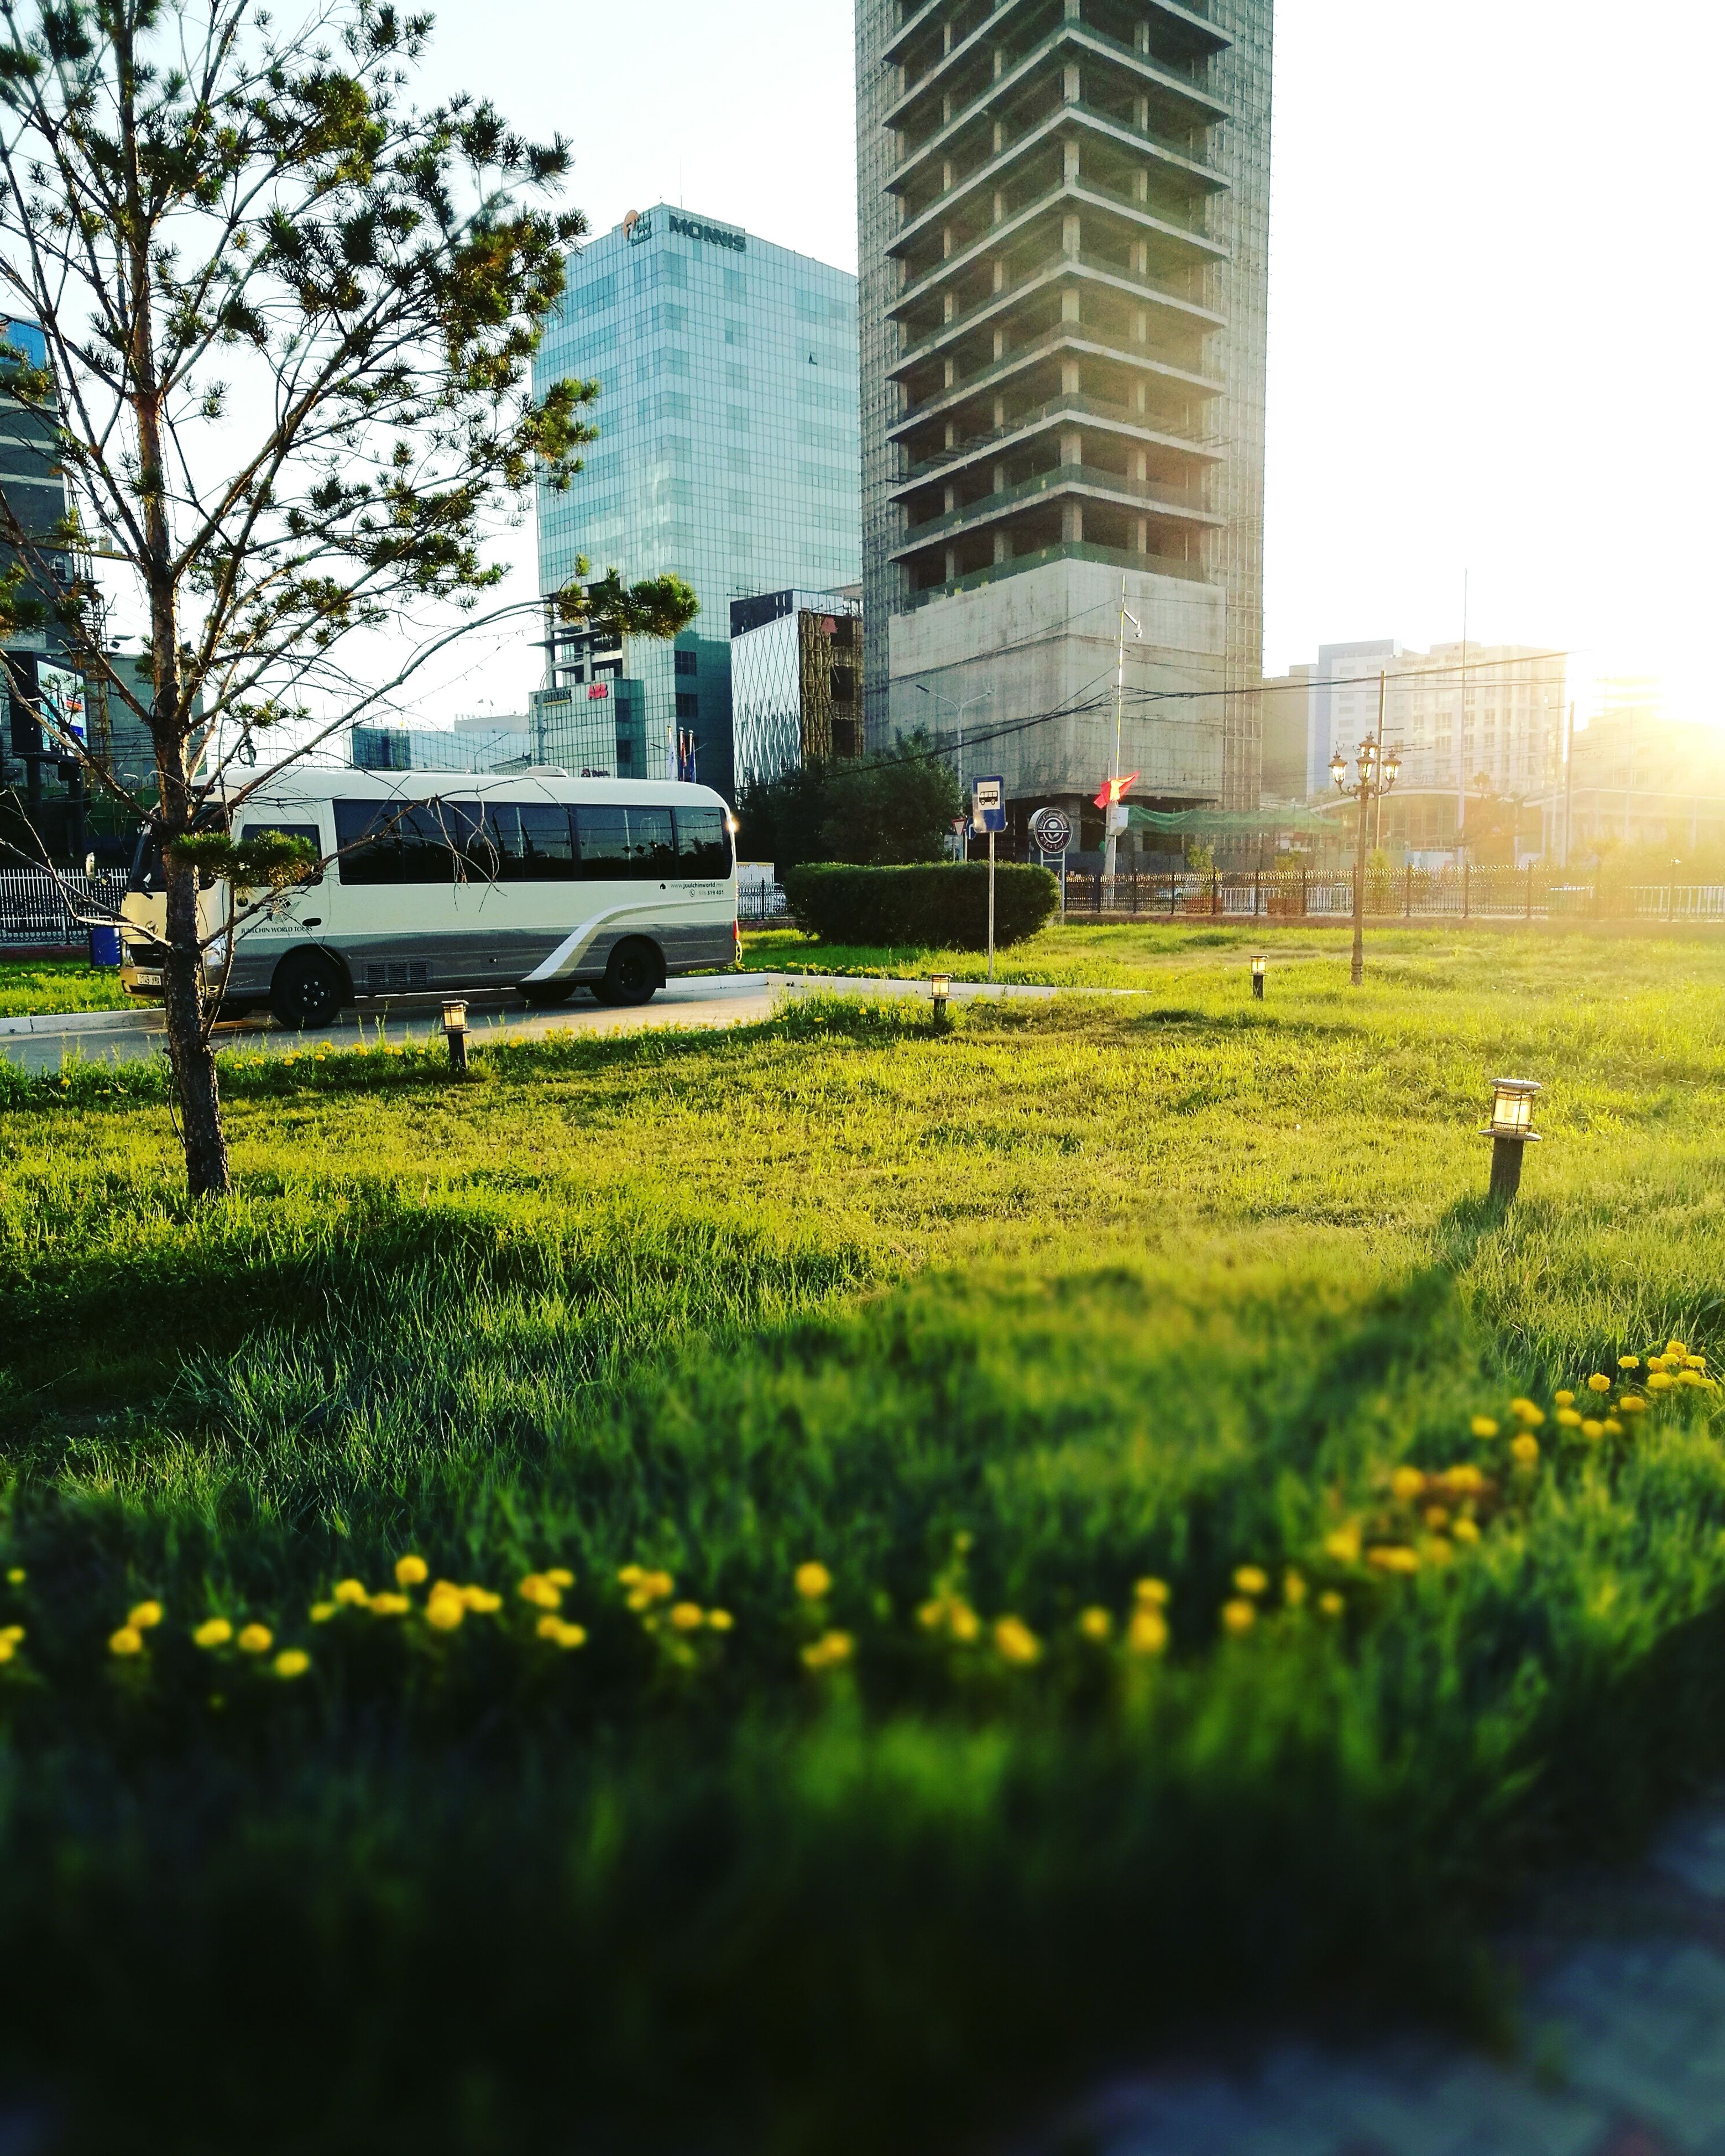 car, architecture, grass, built structure, building exterior, growth, skyscraper, city, day, outdoors, no people, tree, nature, sky